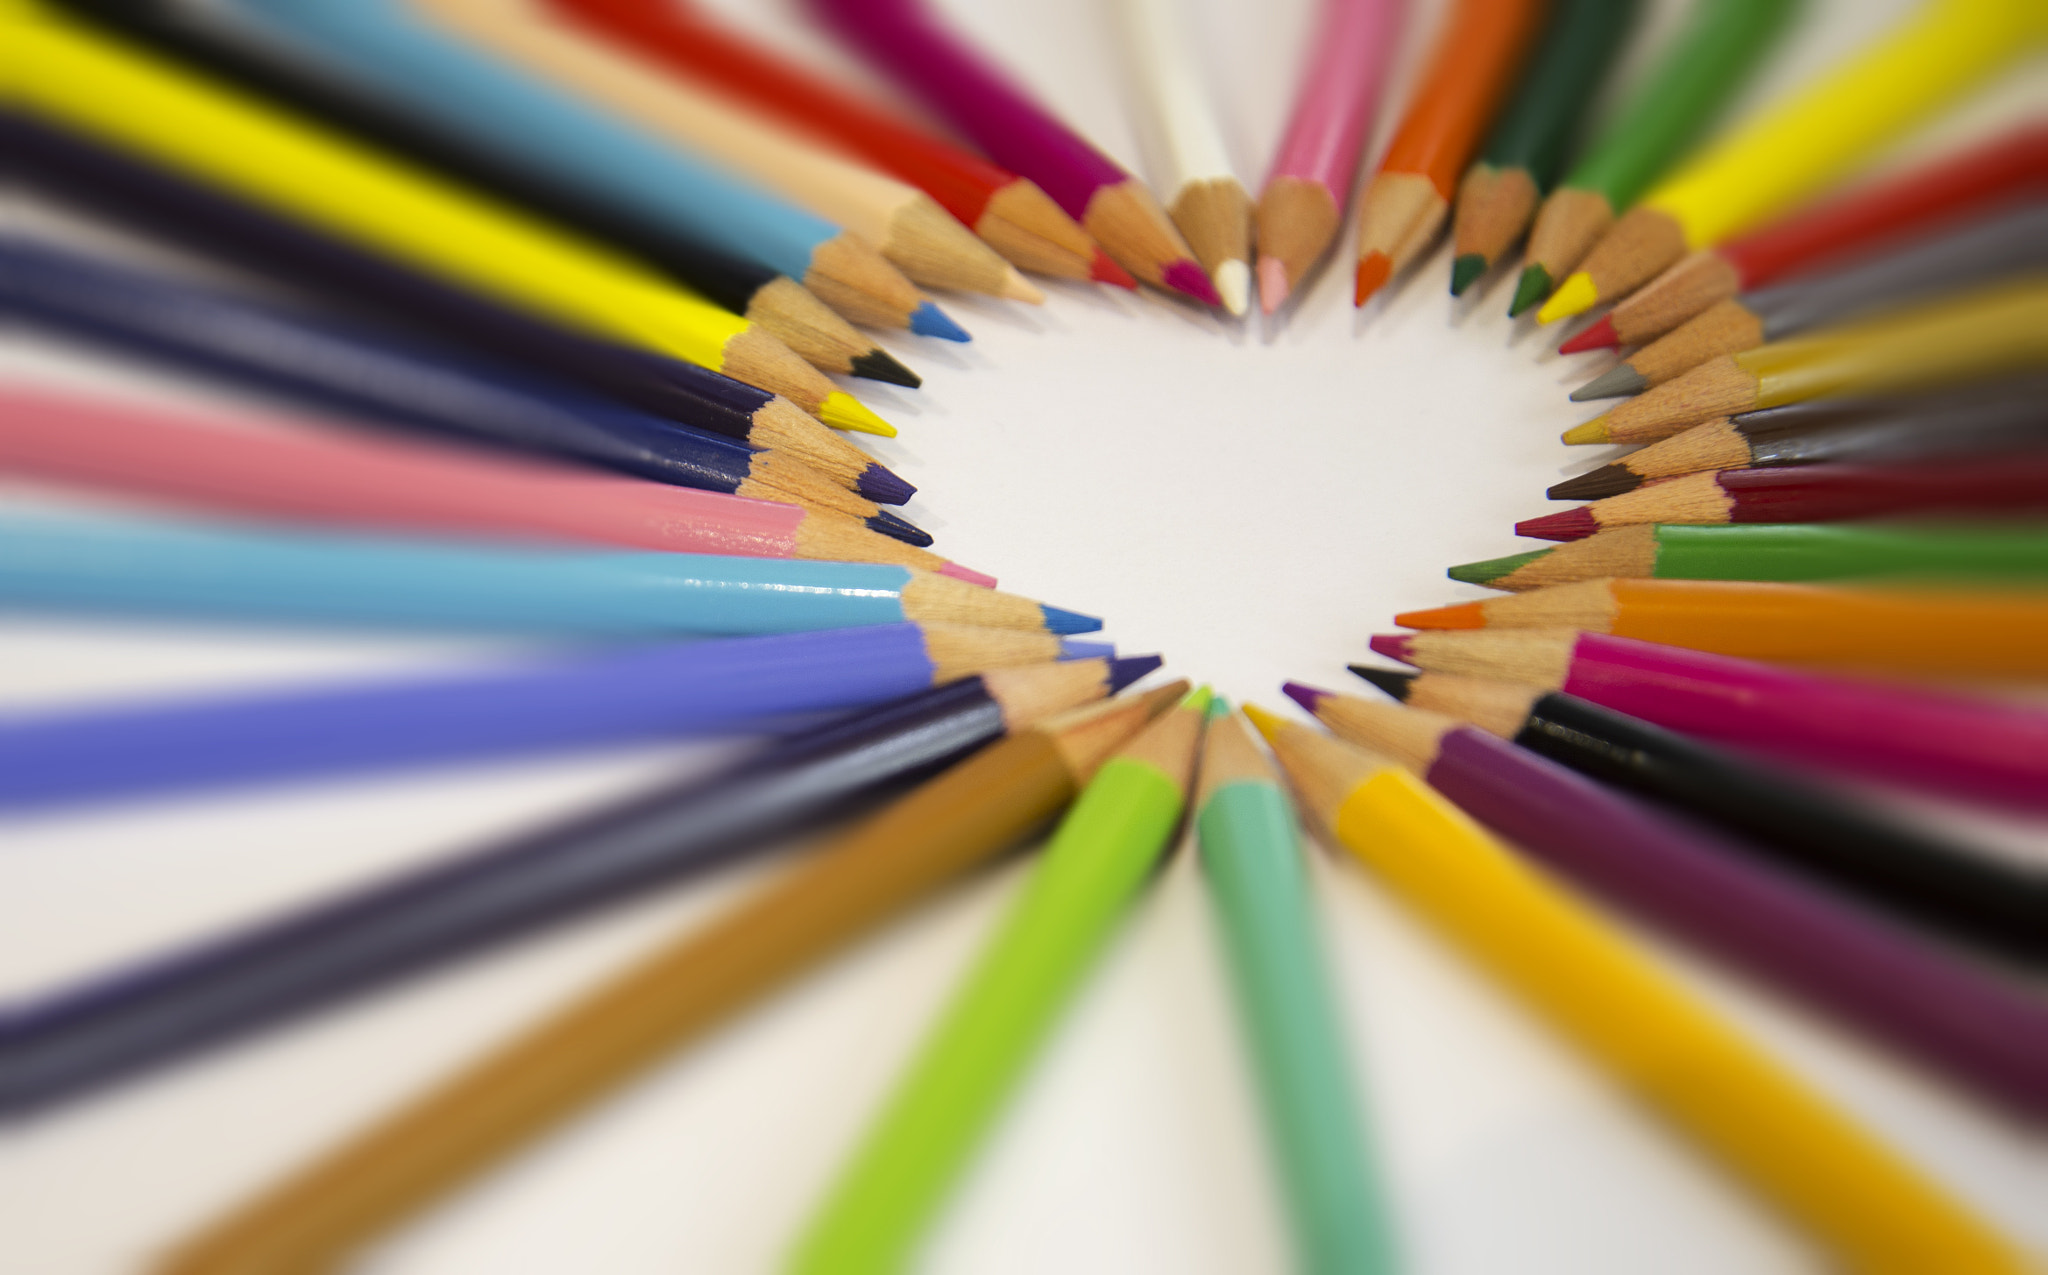 Photograph The color Of heart by Francesco Mangiaglia on 500px